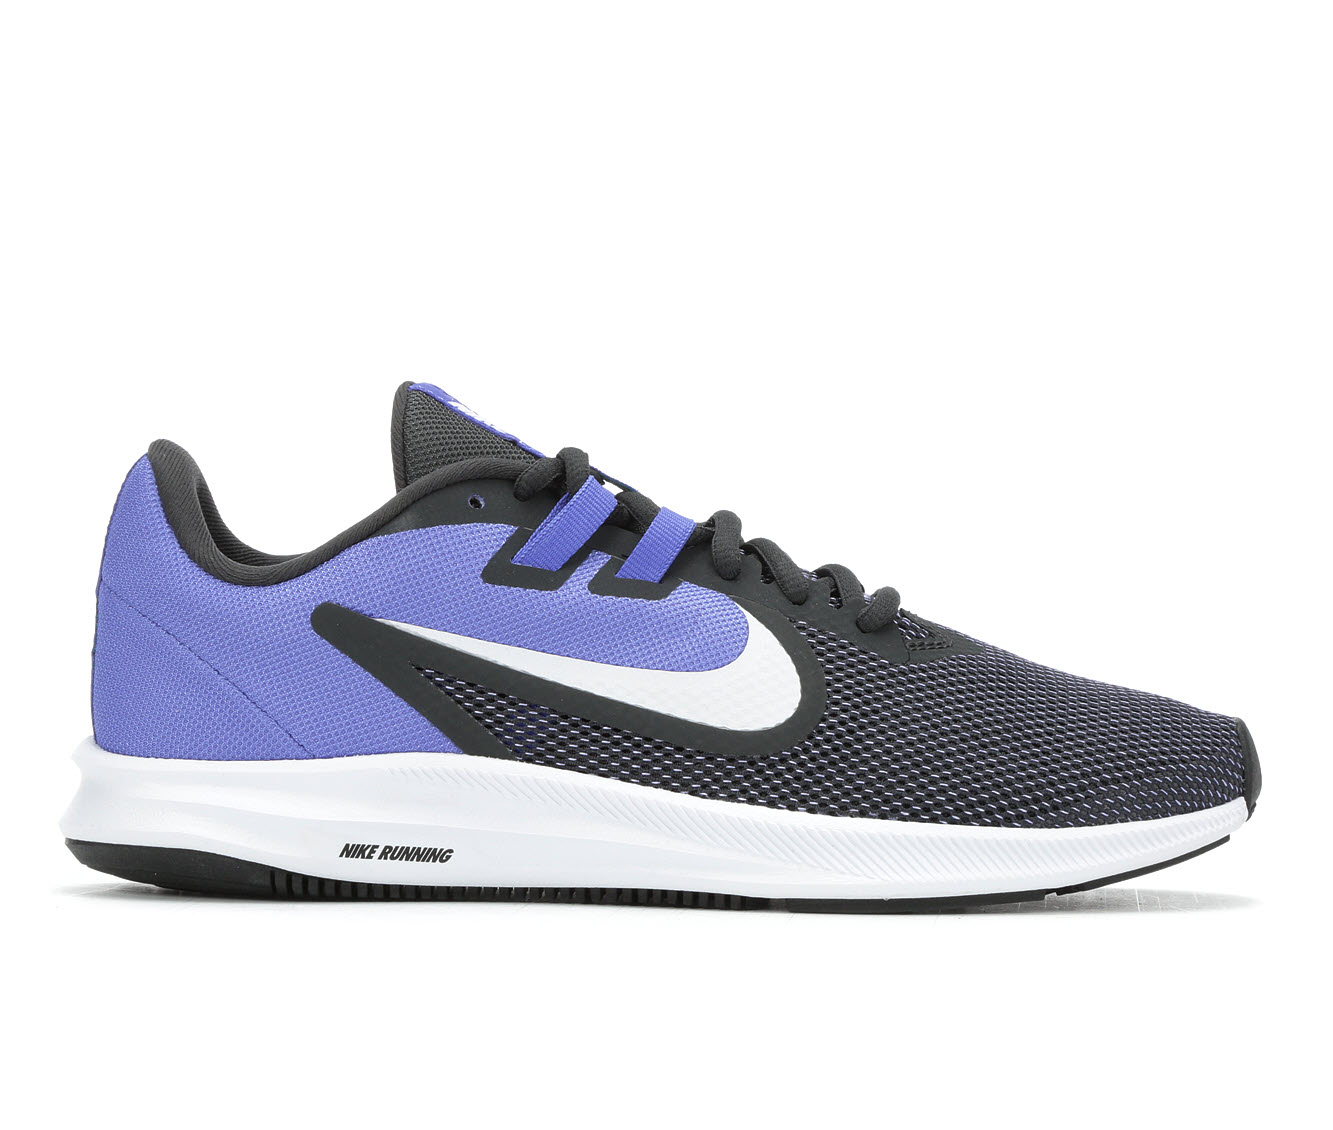 Nike Downshifter 9 Women's Athletic Shoe (Blue)